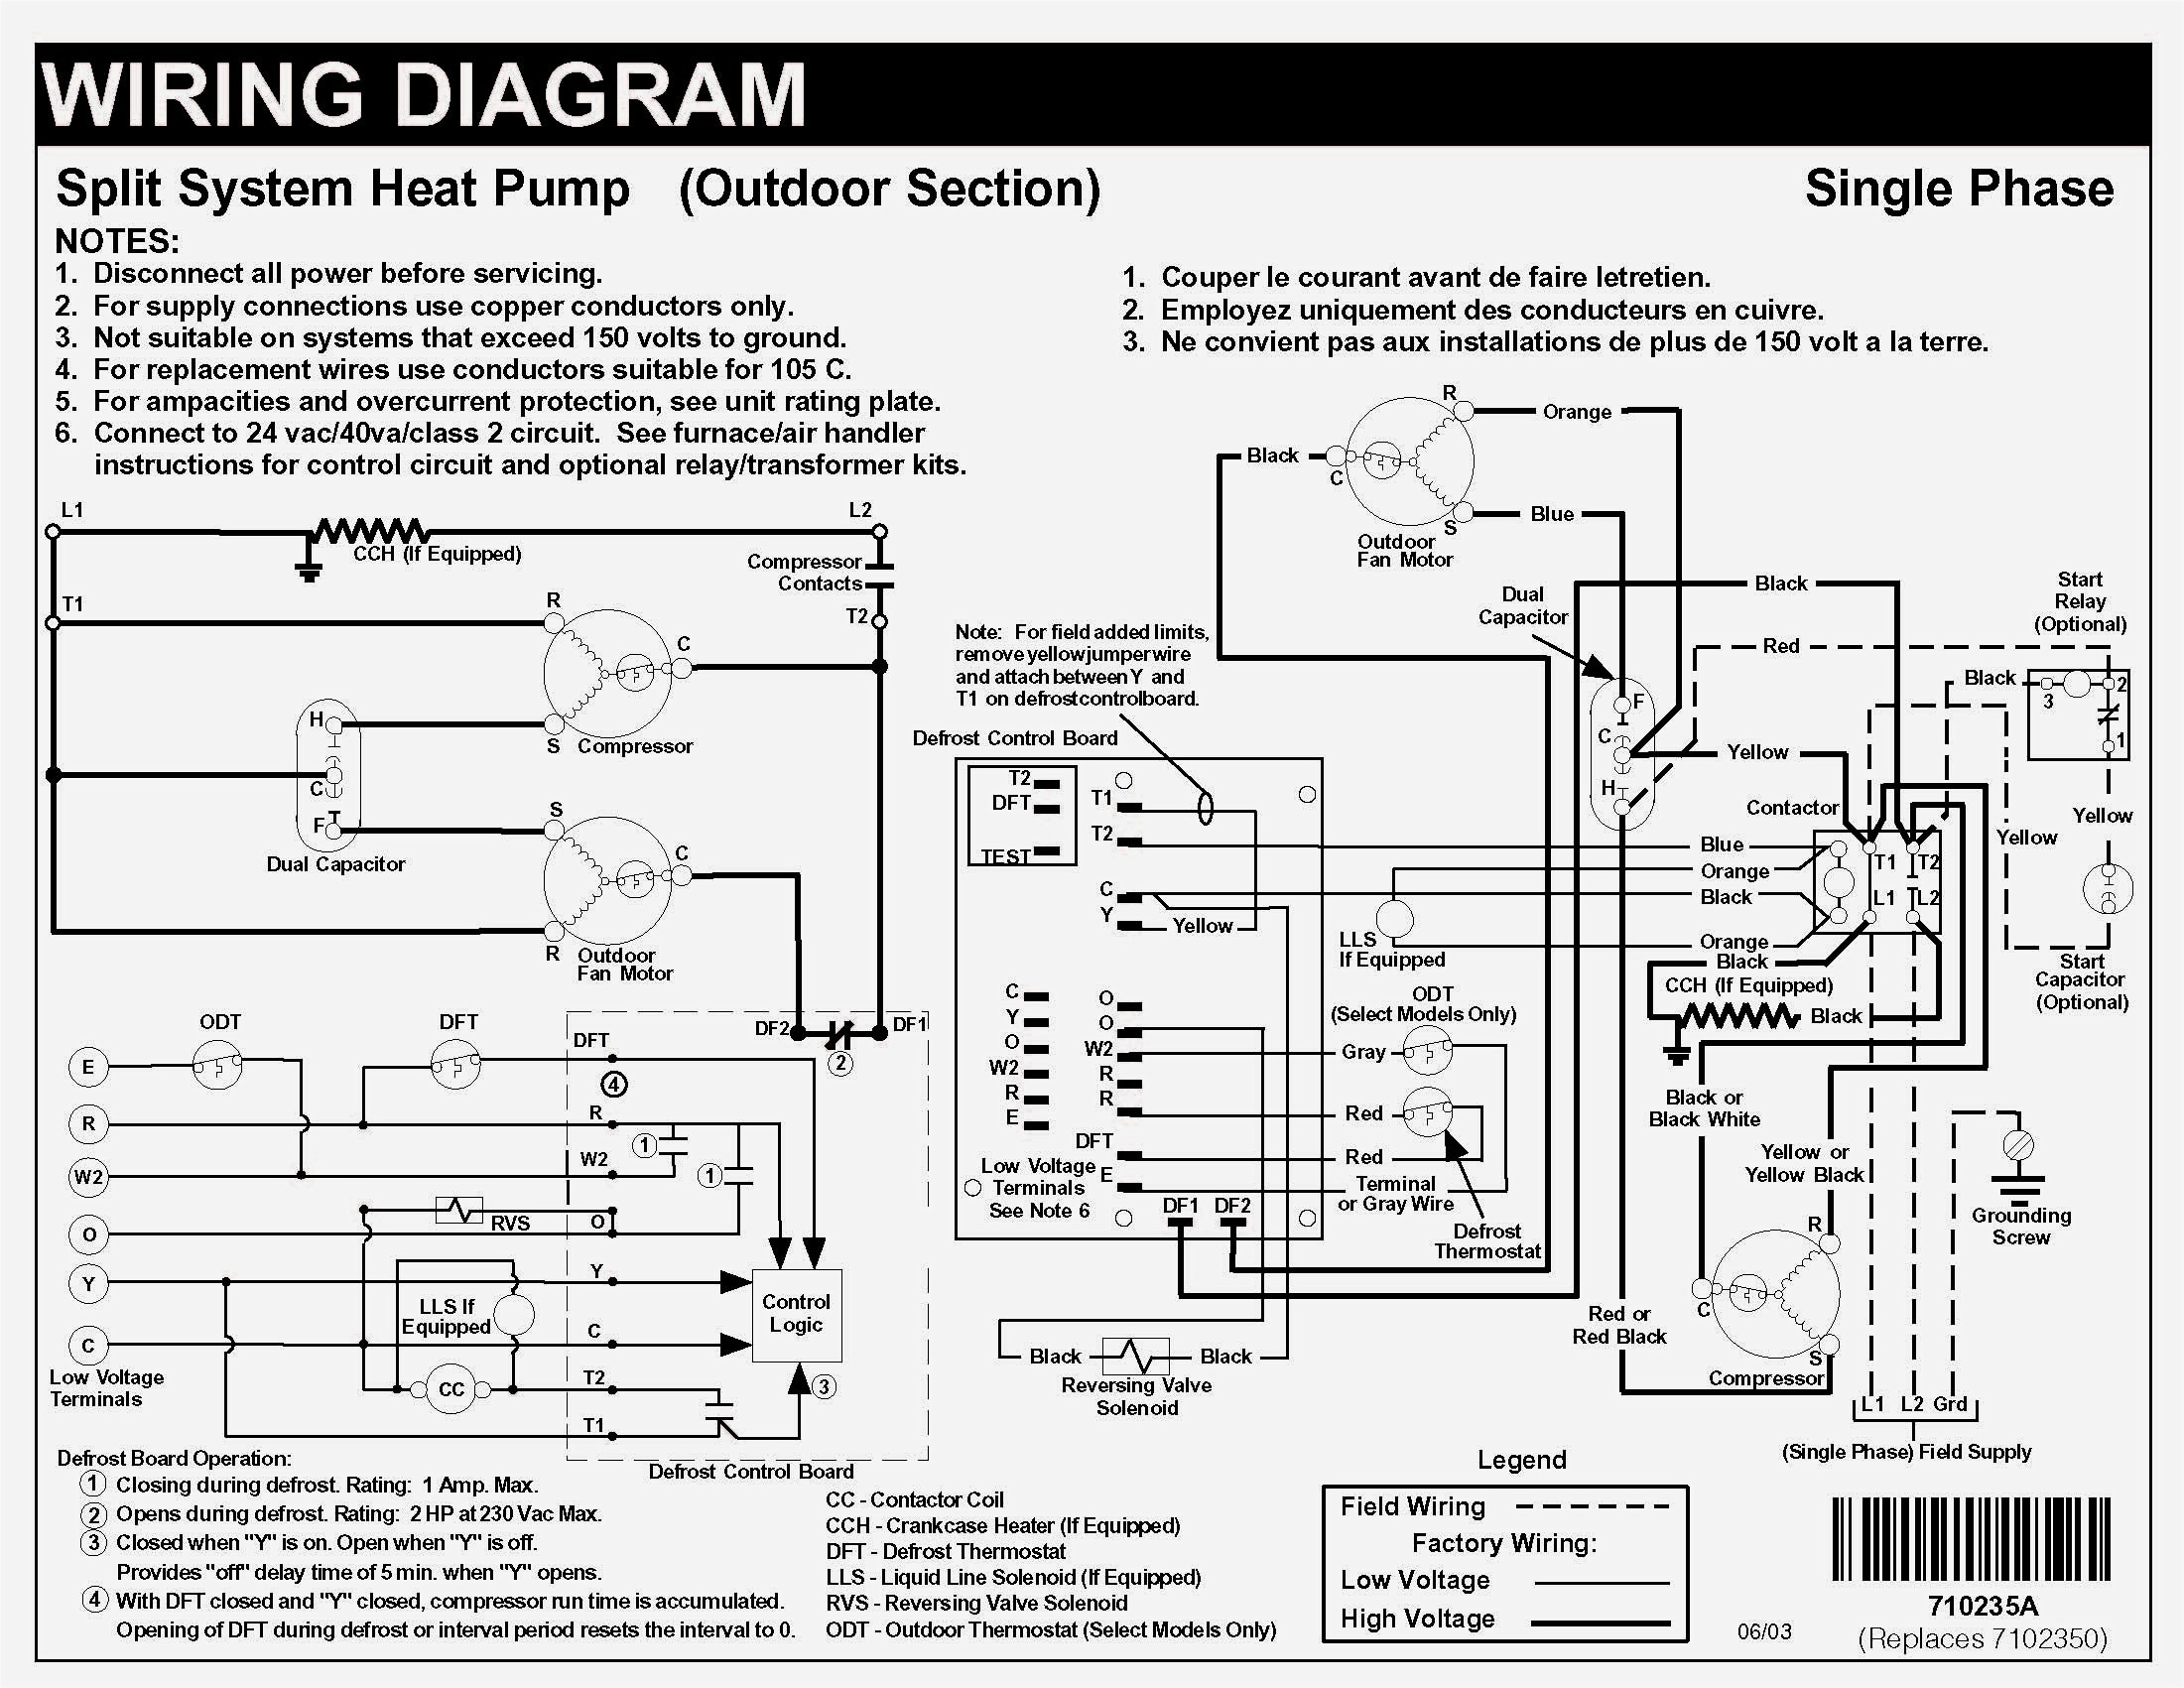 kenmore elite dryer heating element wiring diagram Collection-Kenmore Elite Dryer Parts Whirlpool Fridge Amana Ge Appliance Striking Wiring Diagram 14-r